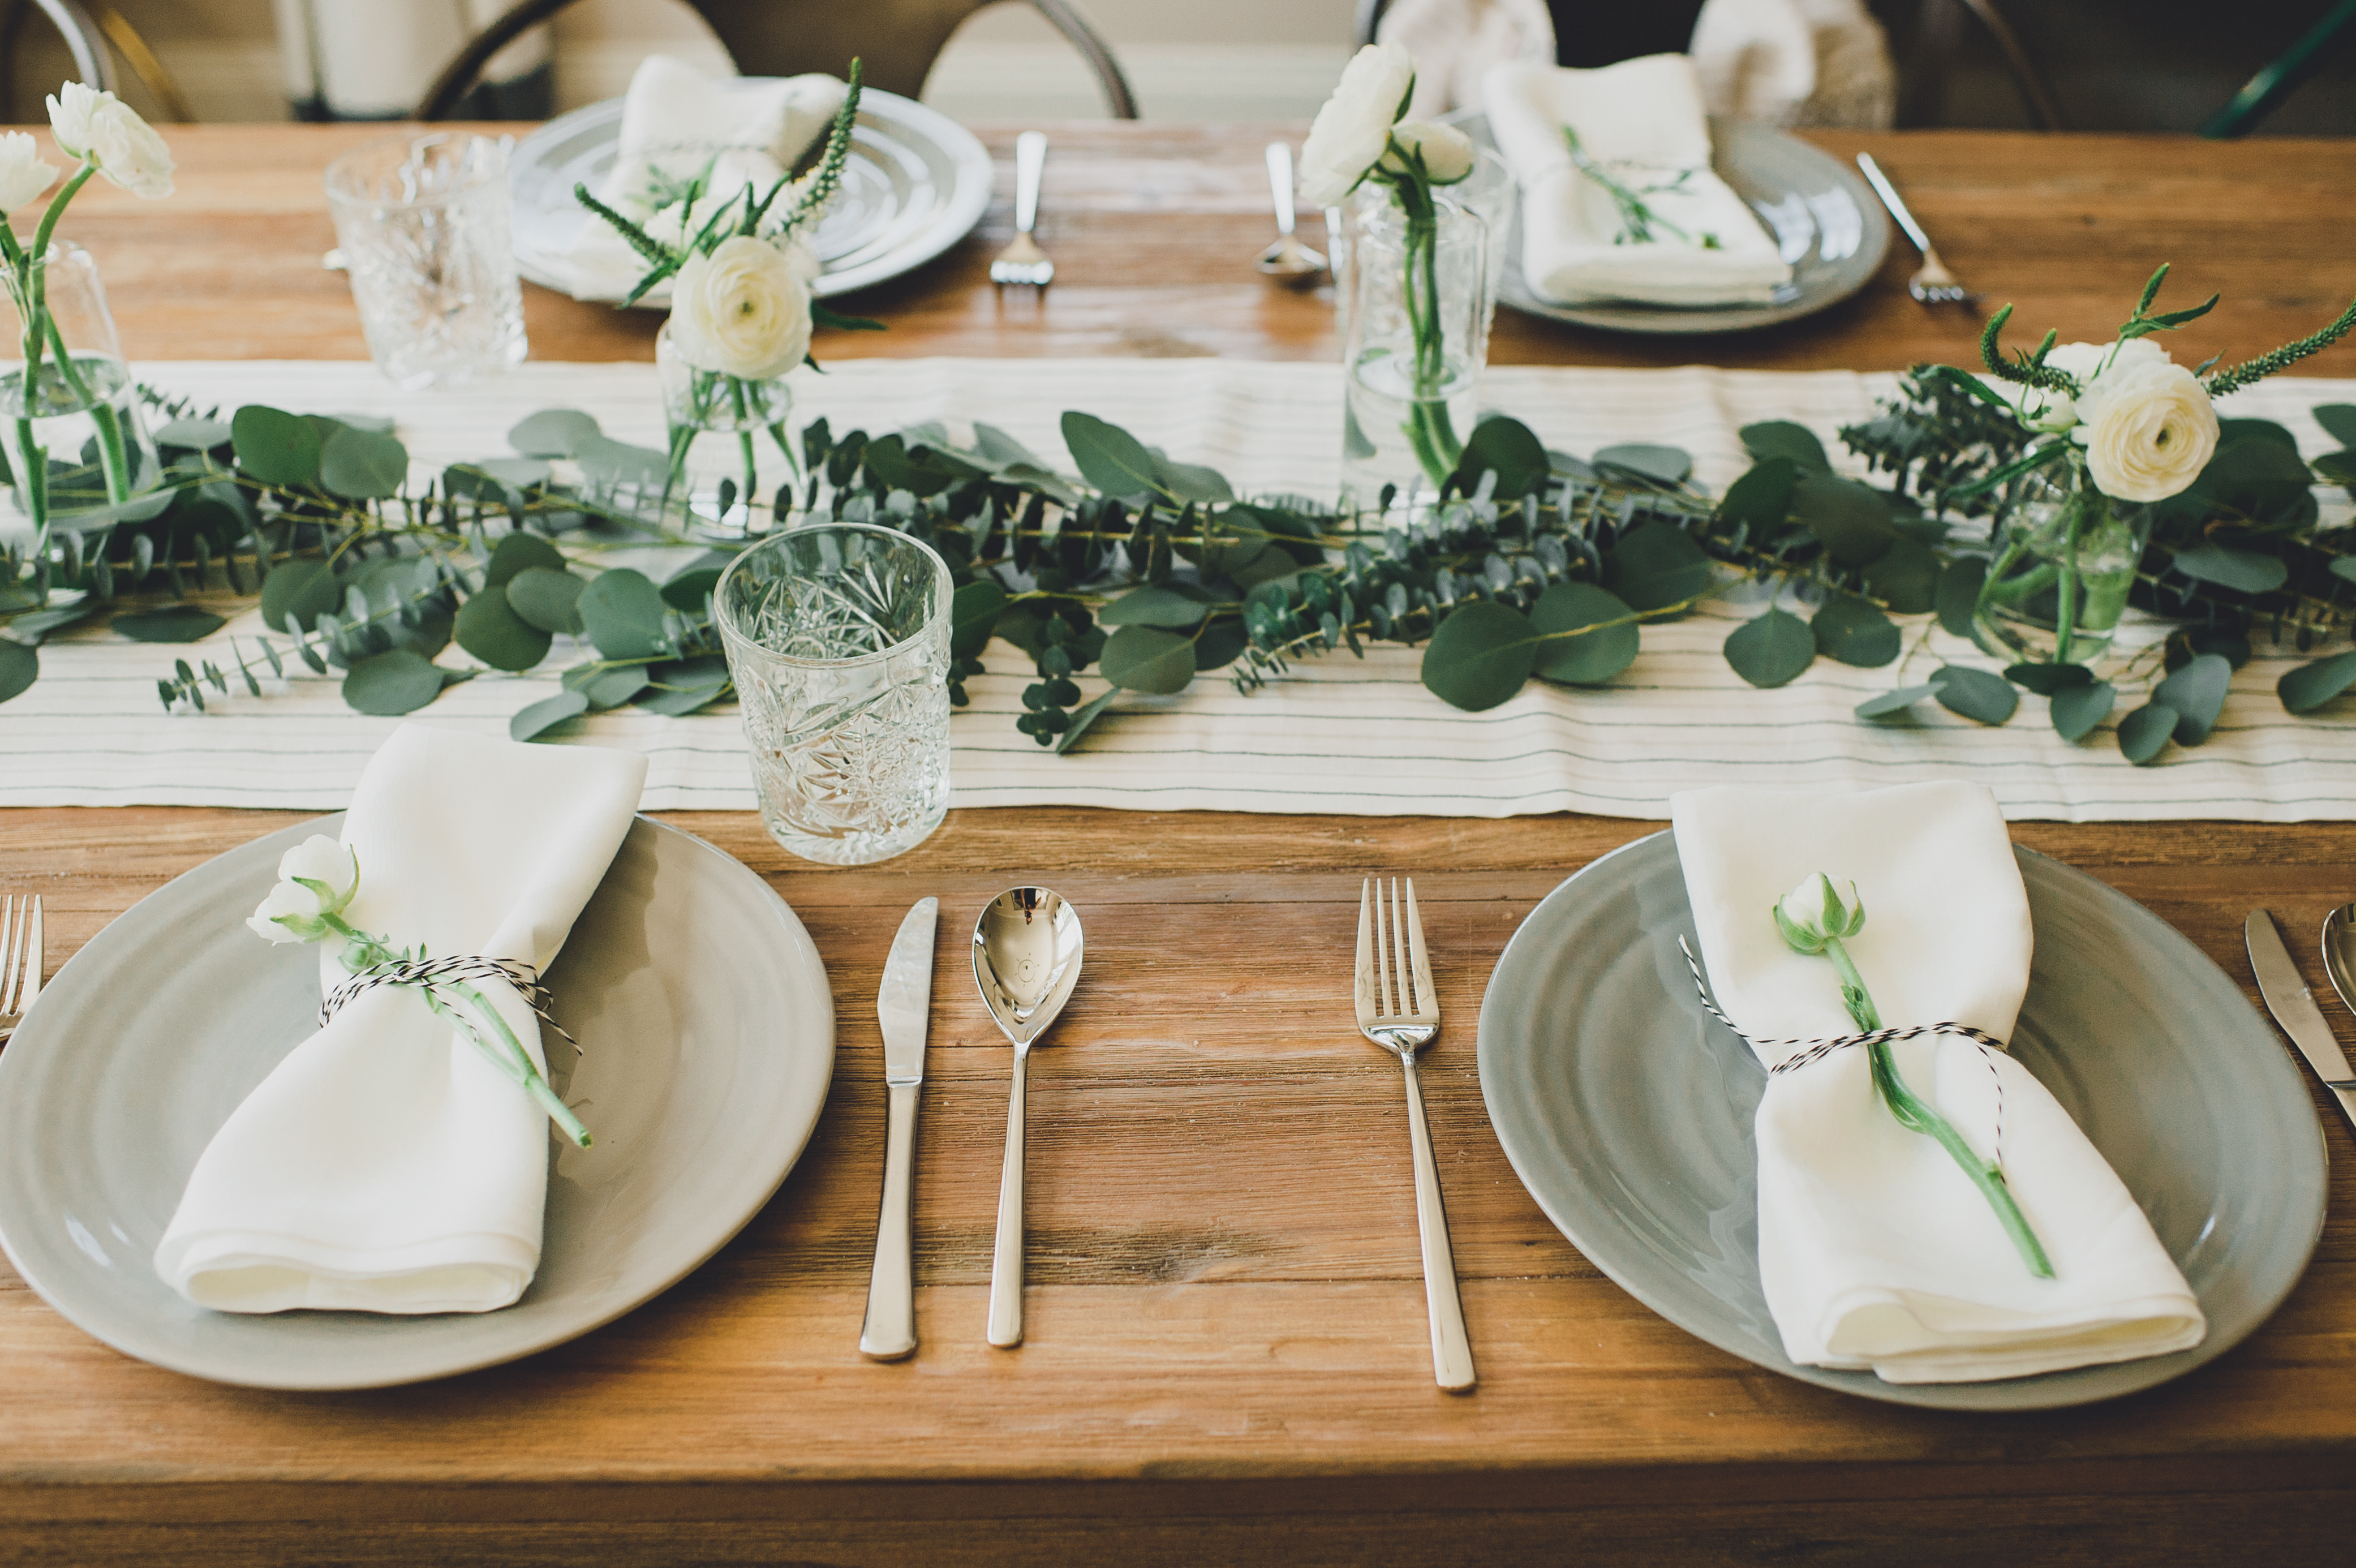 Dinner setting with dinner plates, glasses, flatware and flowers